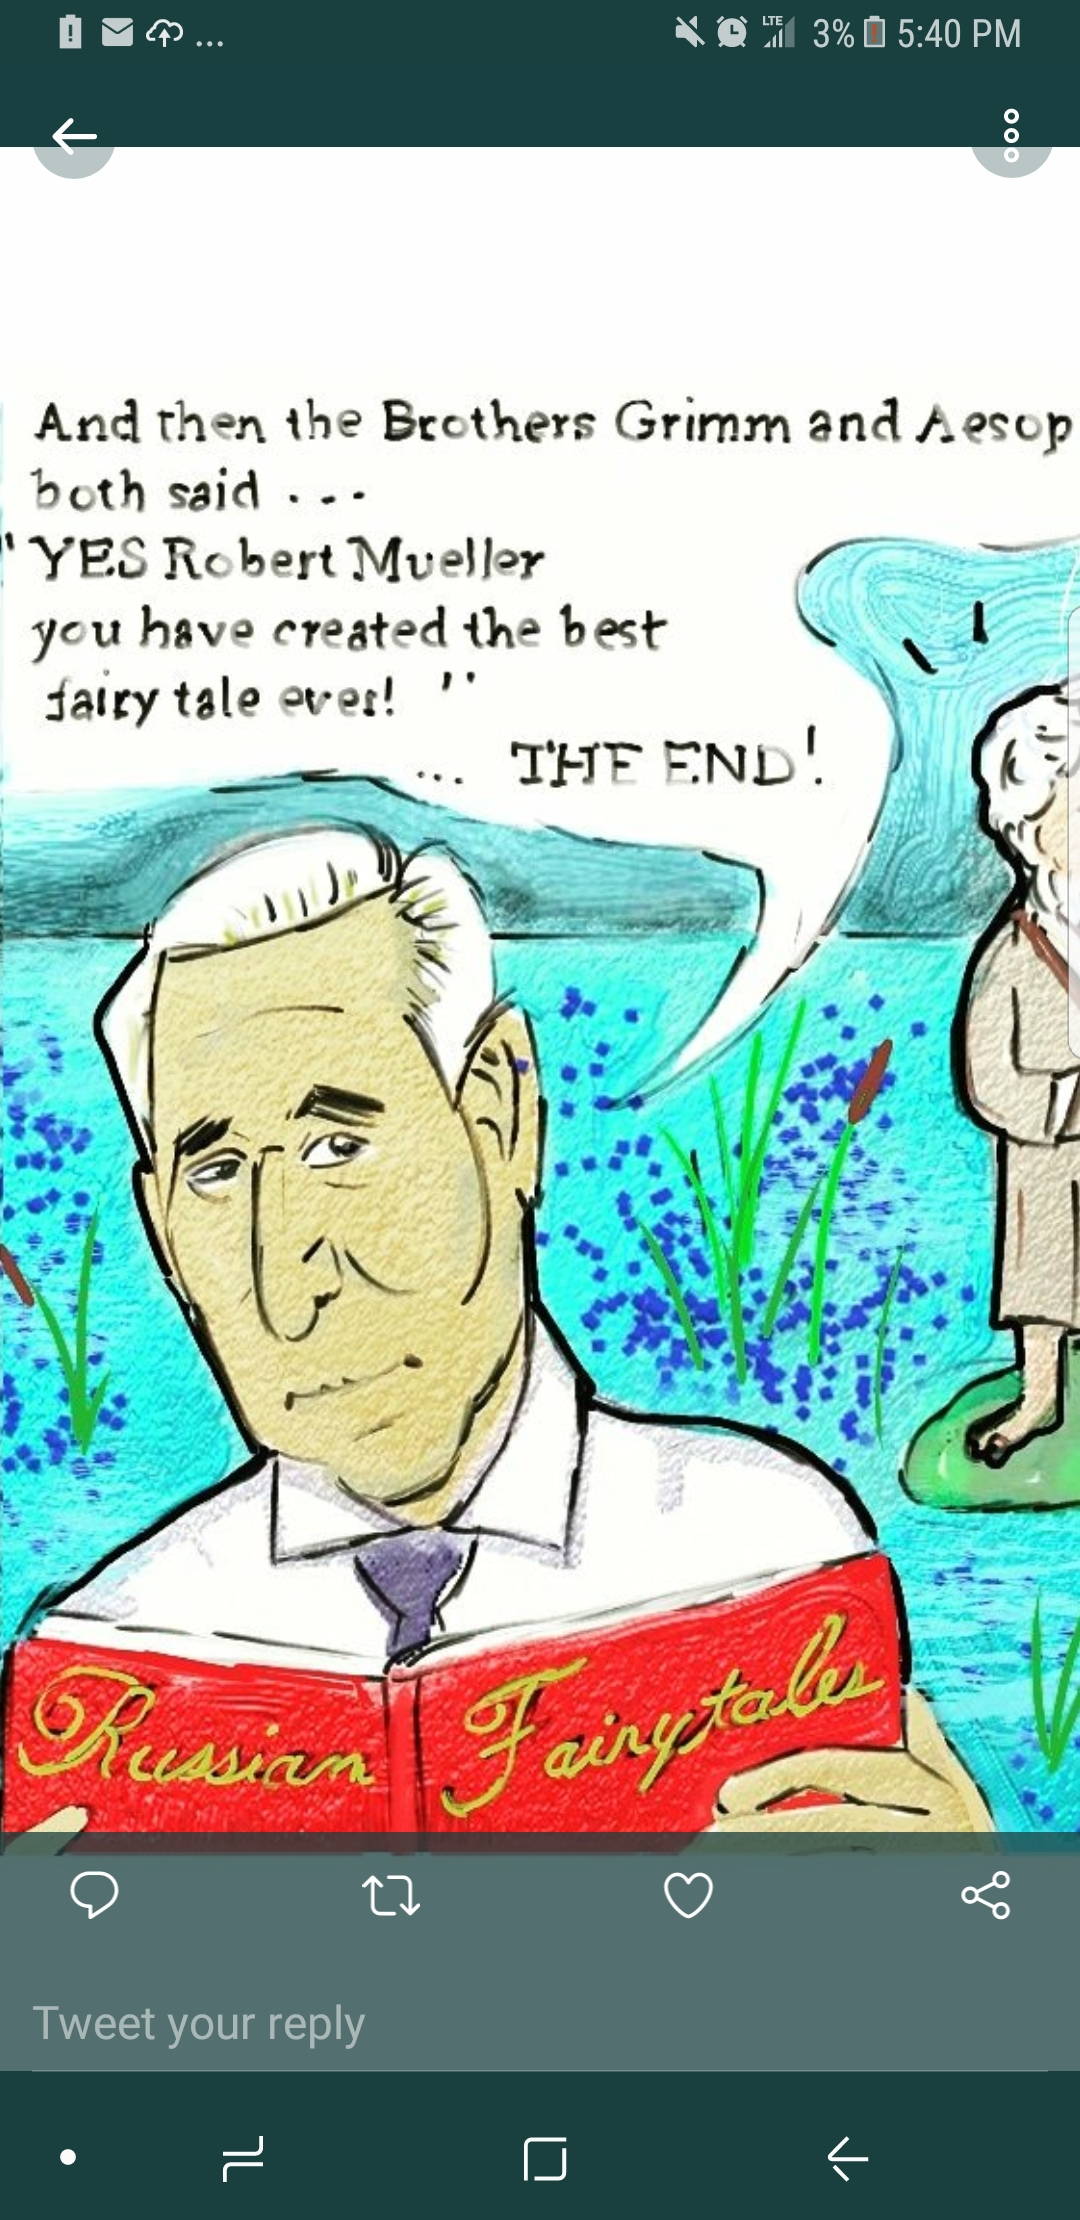 roger stone political cartoons for donald trump by maria